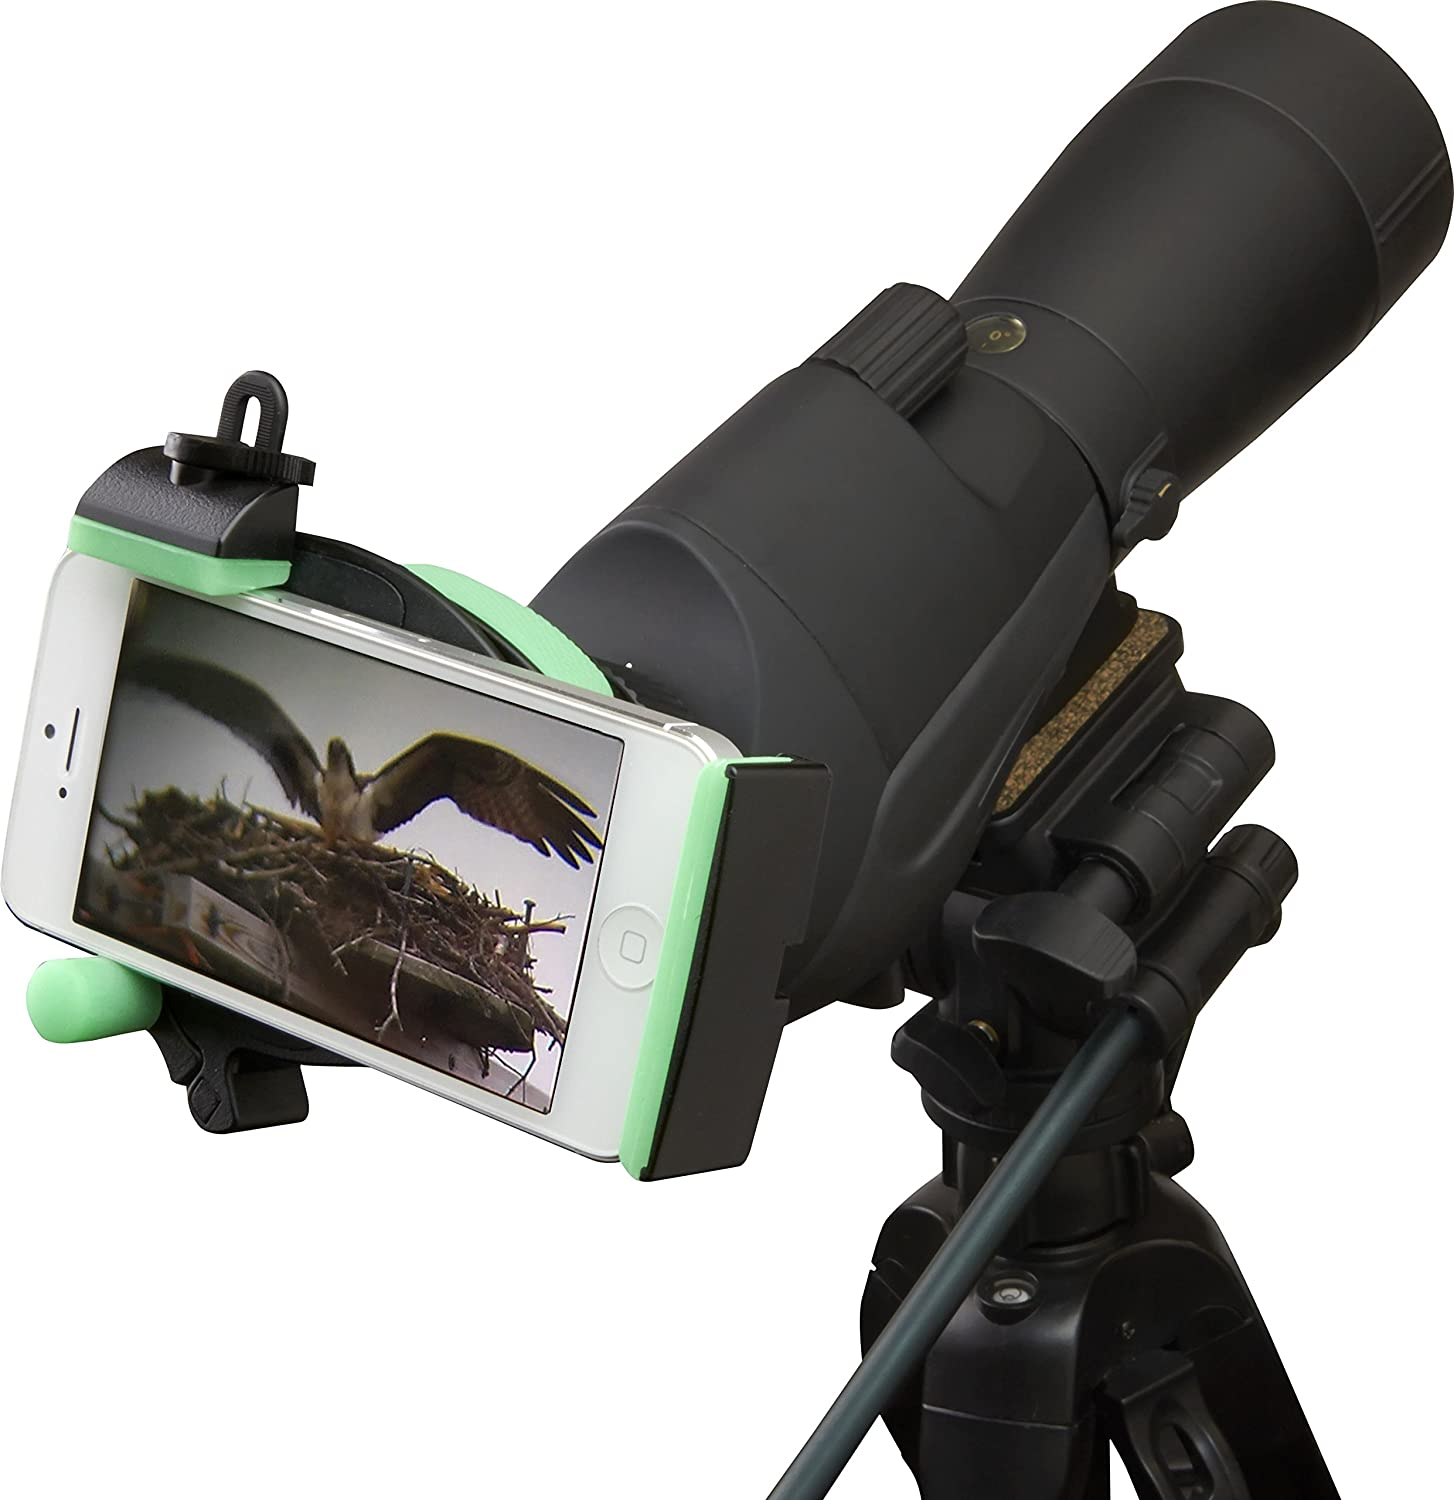 Carson HookUpz Universal Smart Phone Optics Digiscoping Adapter For Binoculars Spotting Scopes Monoculars Telescopes Microscopes and More (IS-100) at Amazon.com